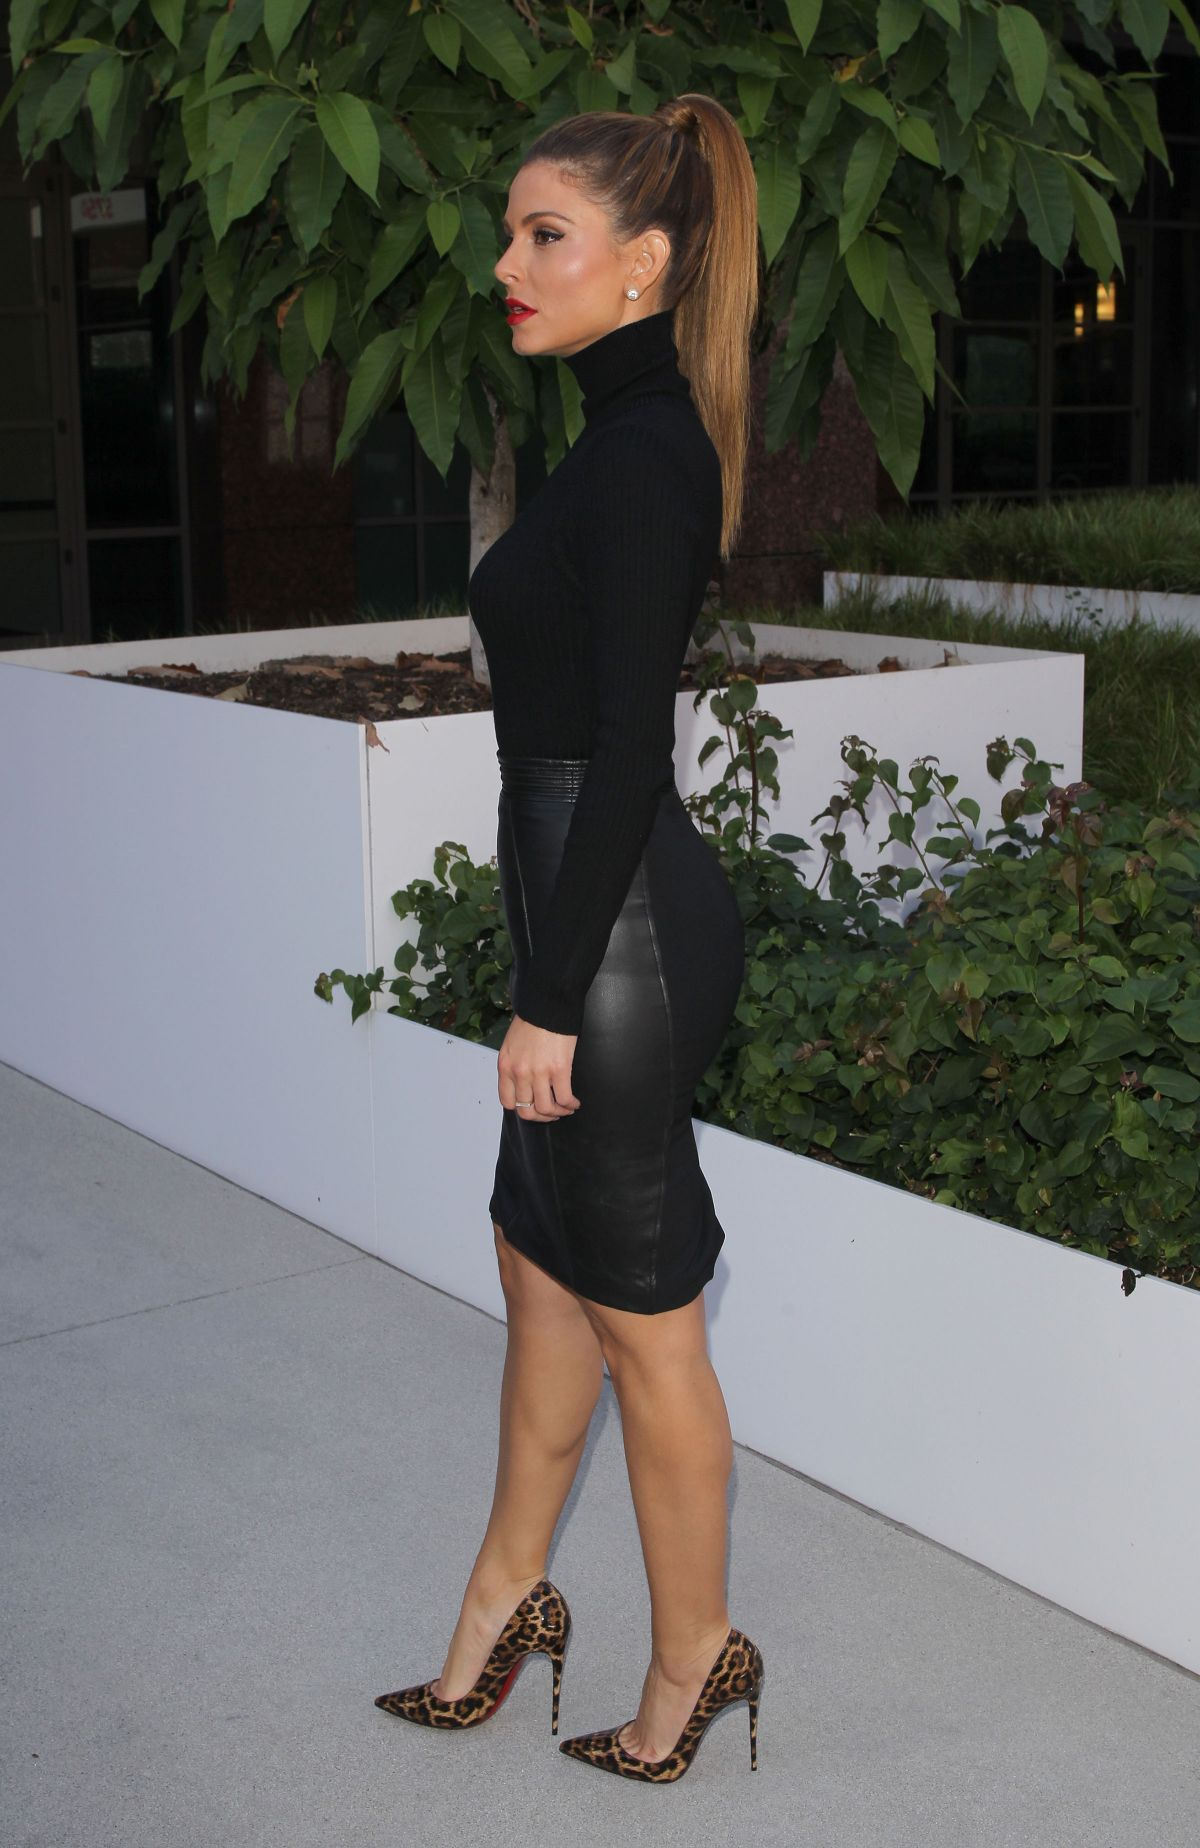 maria-menounos-in-black-leather-skirt-out-in-los-angeles-10-08-2015 ... 518f8c73f3f